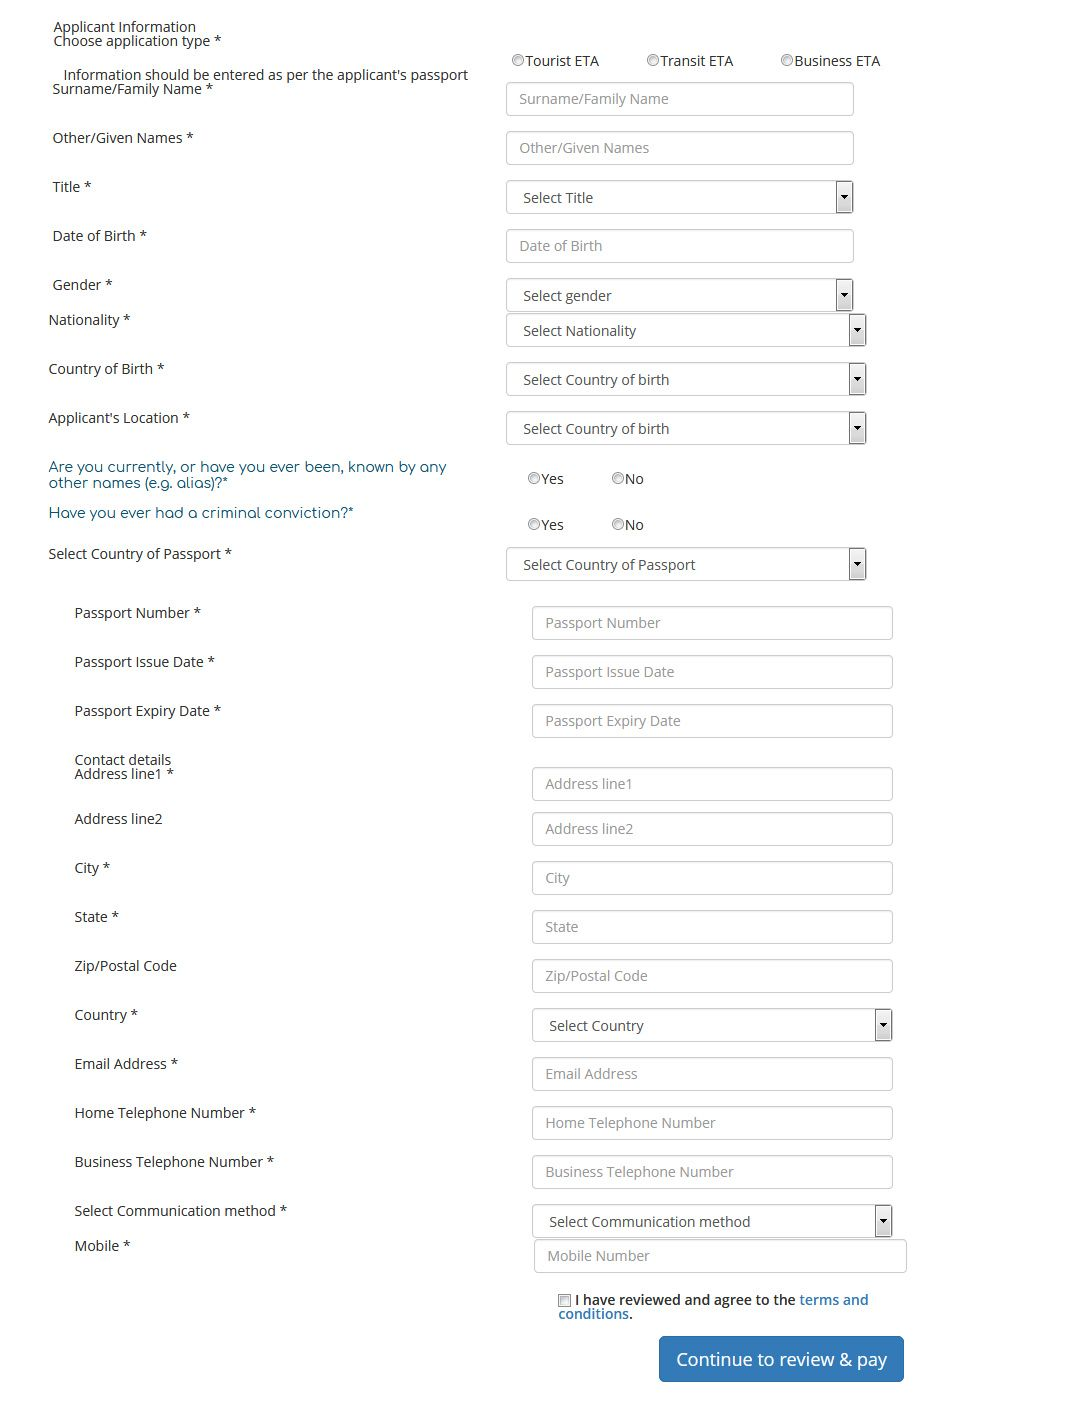 b4703db843214d948569d620294e77d0 Online Application Form For Australian Pport on